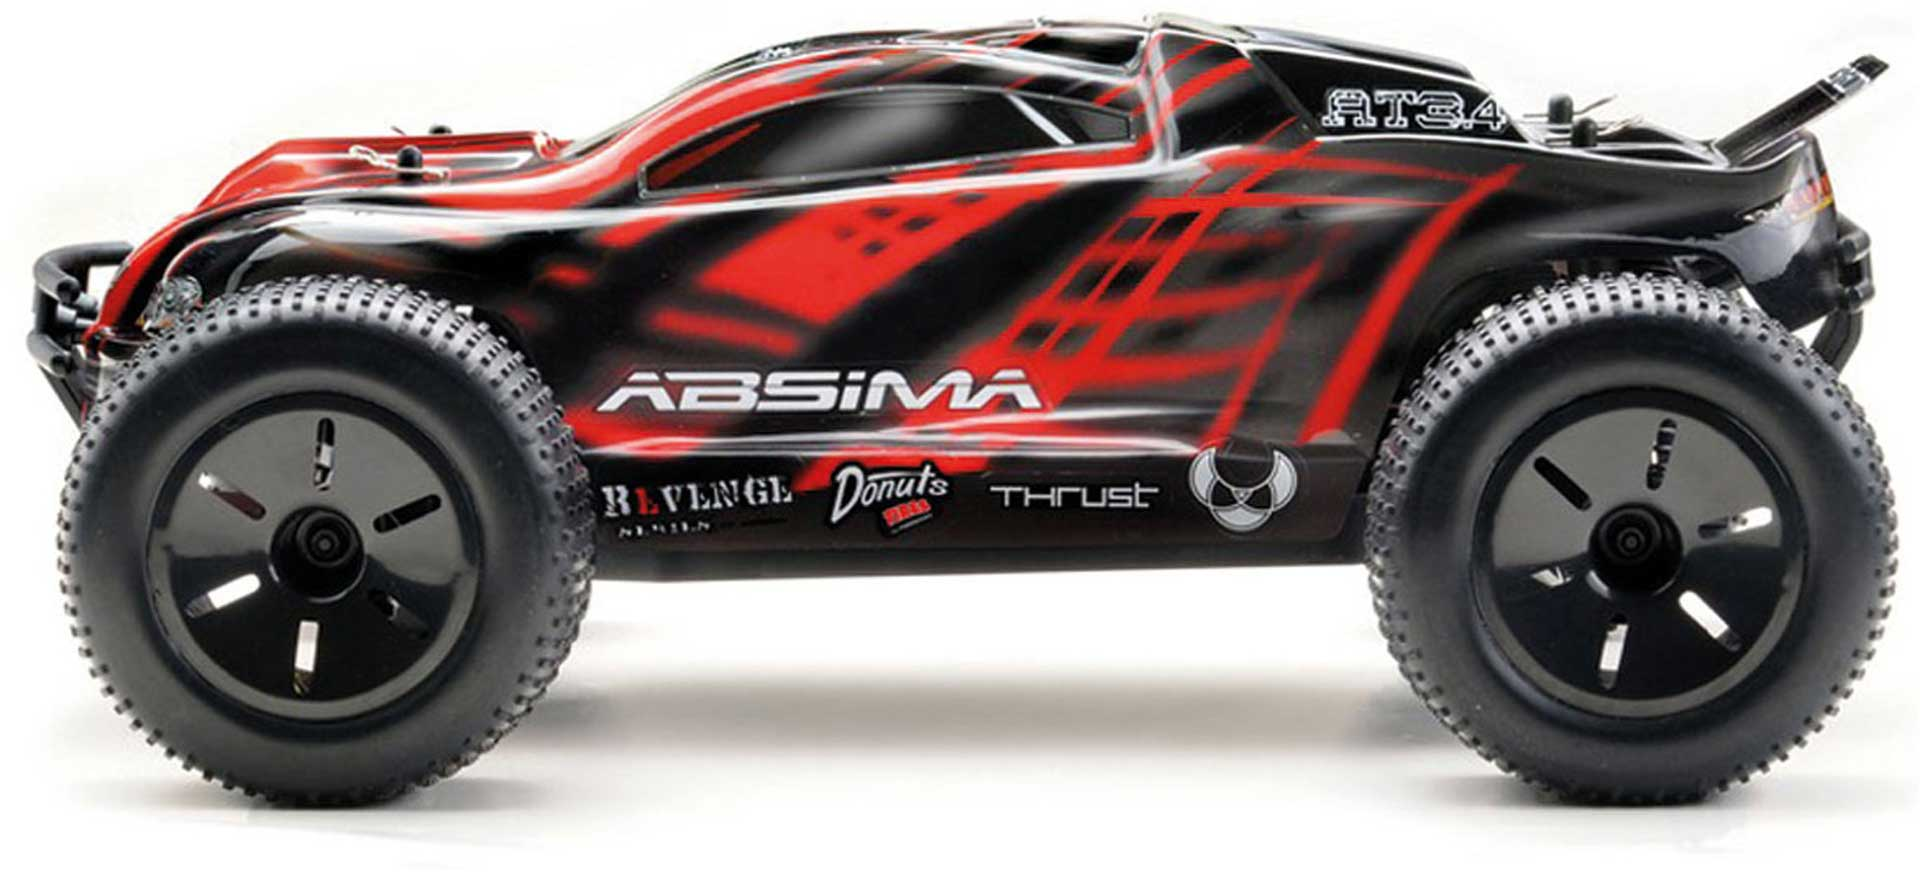 ABSIMA AT3.4 TRUGGY KIT 4WD RACE TRUCK 1/10 BAUSATZ